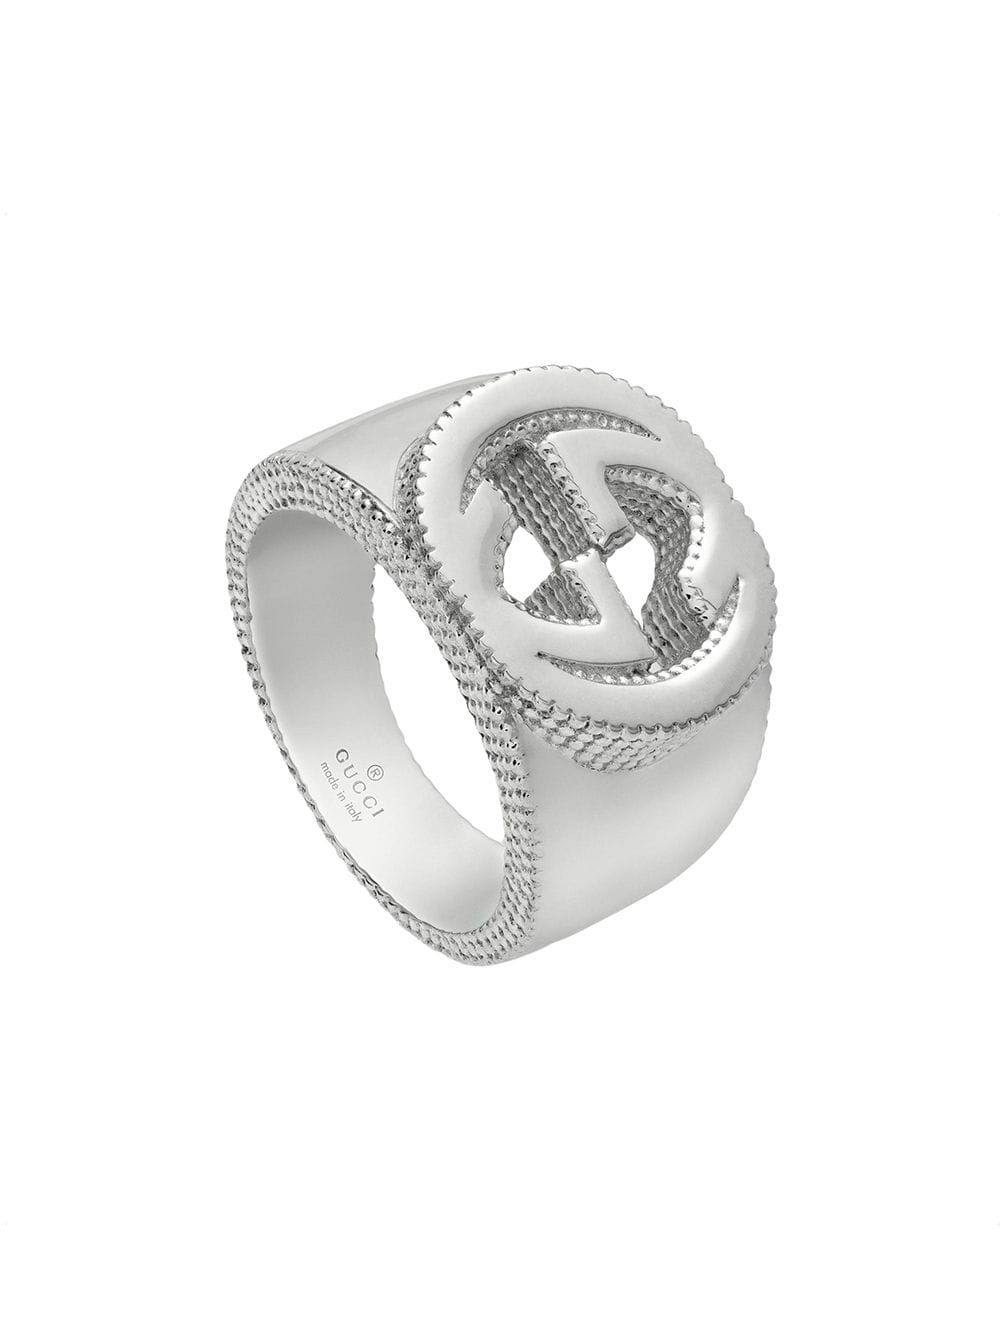 Gucci Interlocking G Ring In Silver Farfetch Silver Accessories Silver Jewelry